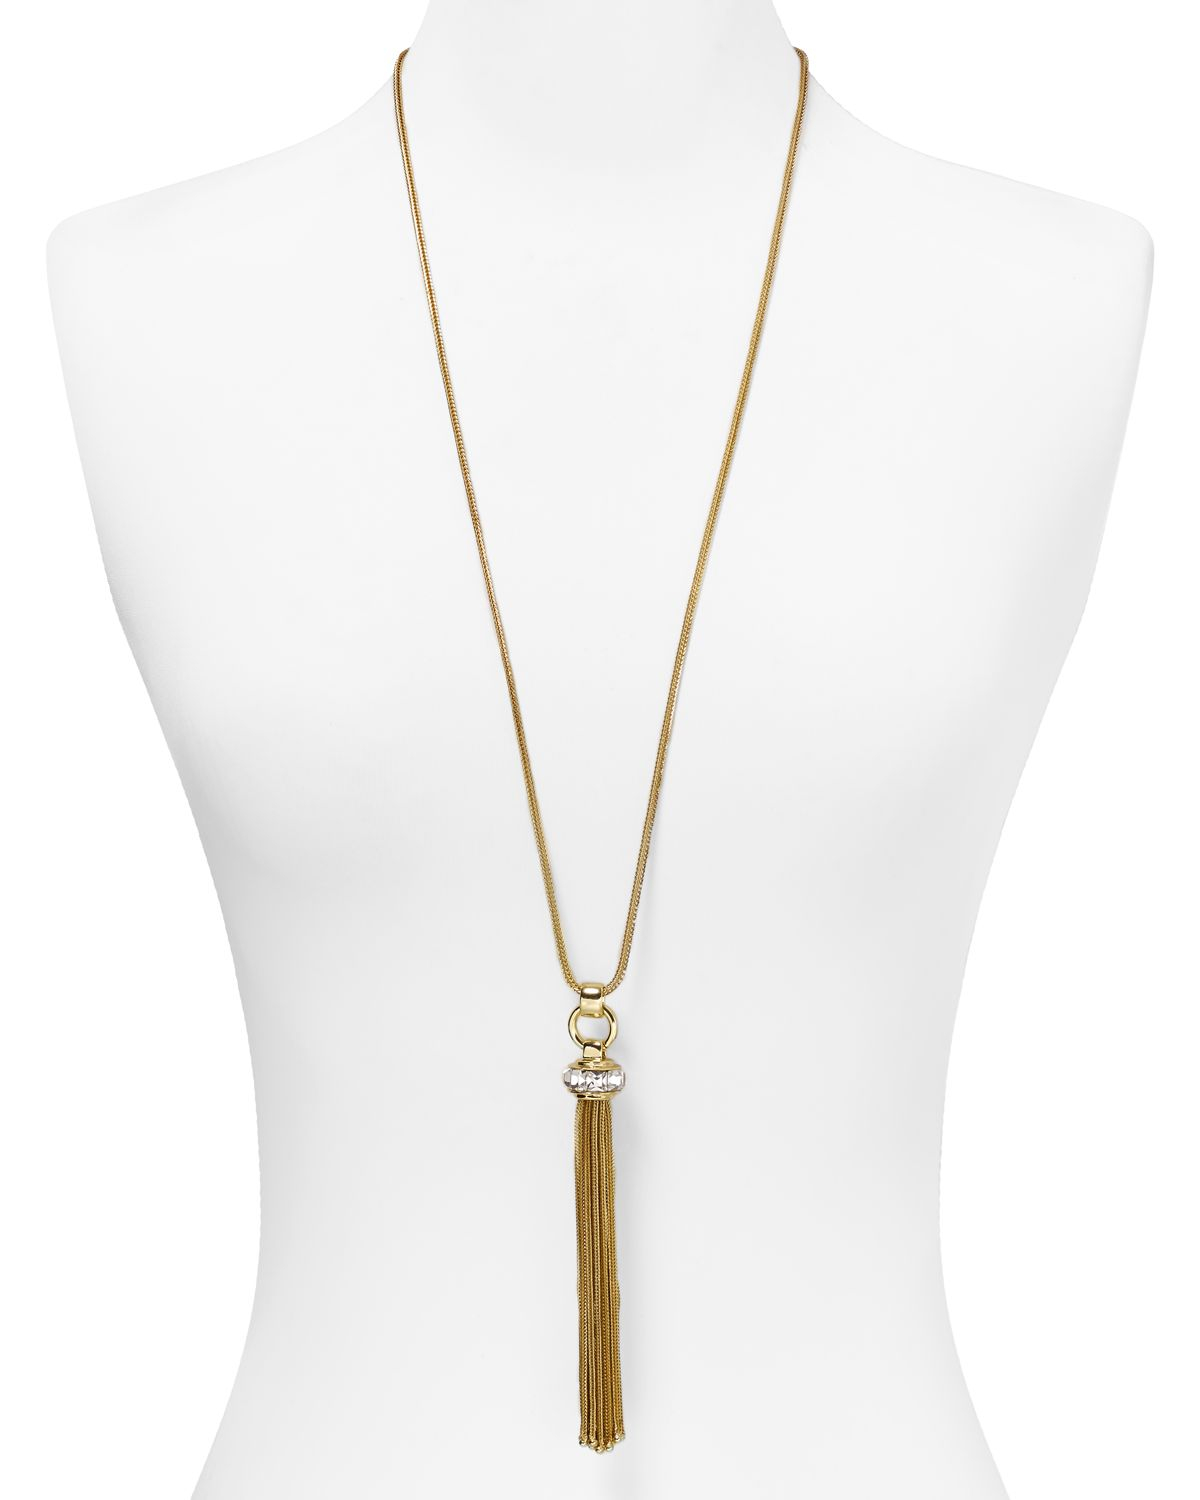 Buy Dogeared Balance Tube Bar Gold Plated Silver Necklace, 16